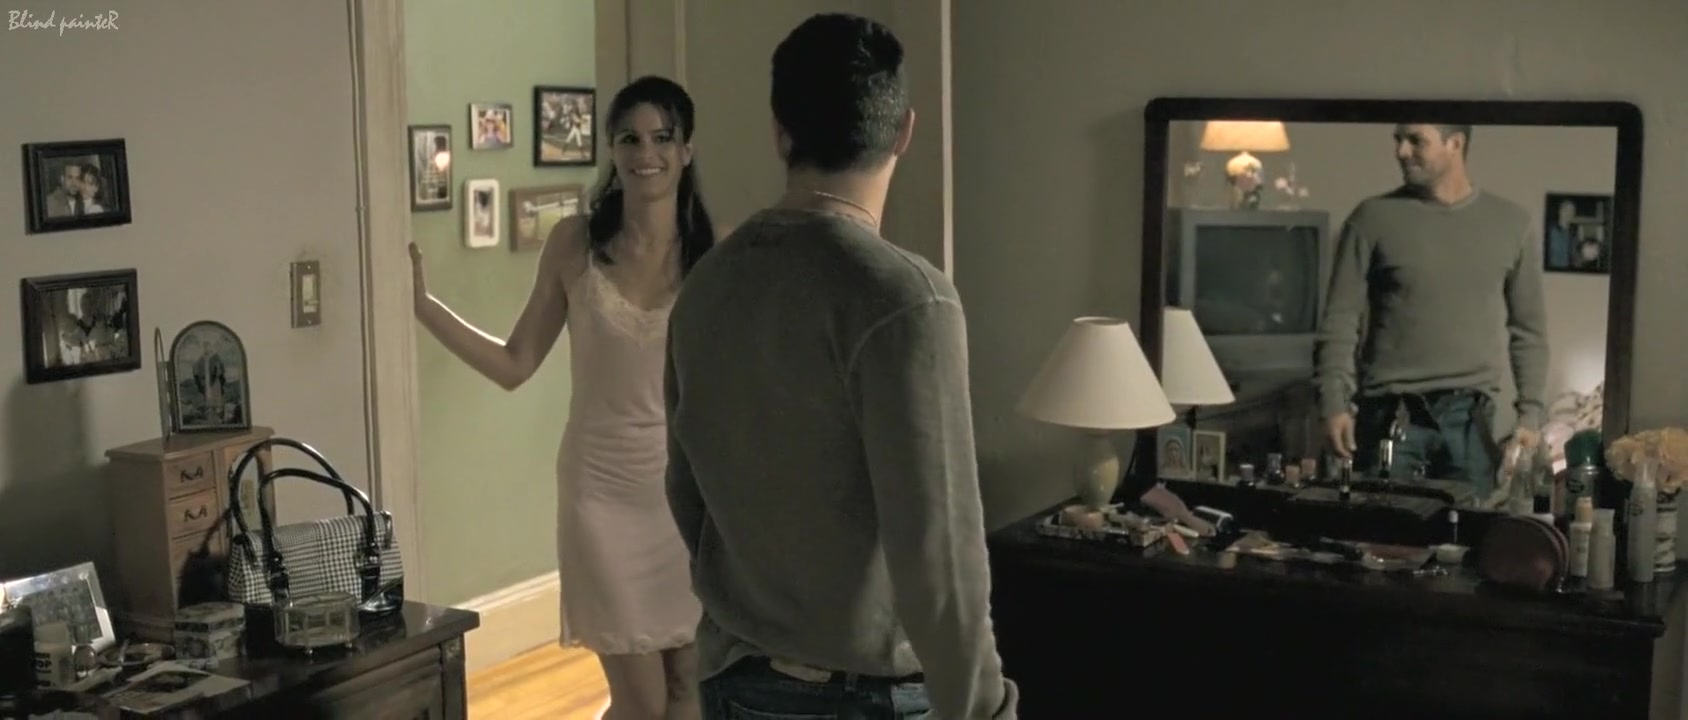 What Doesnt Kill You (2008) Amanda Peet big ass and tirs